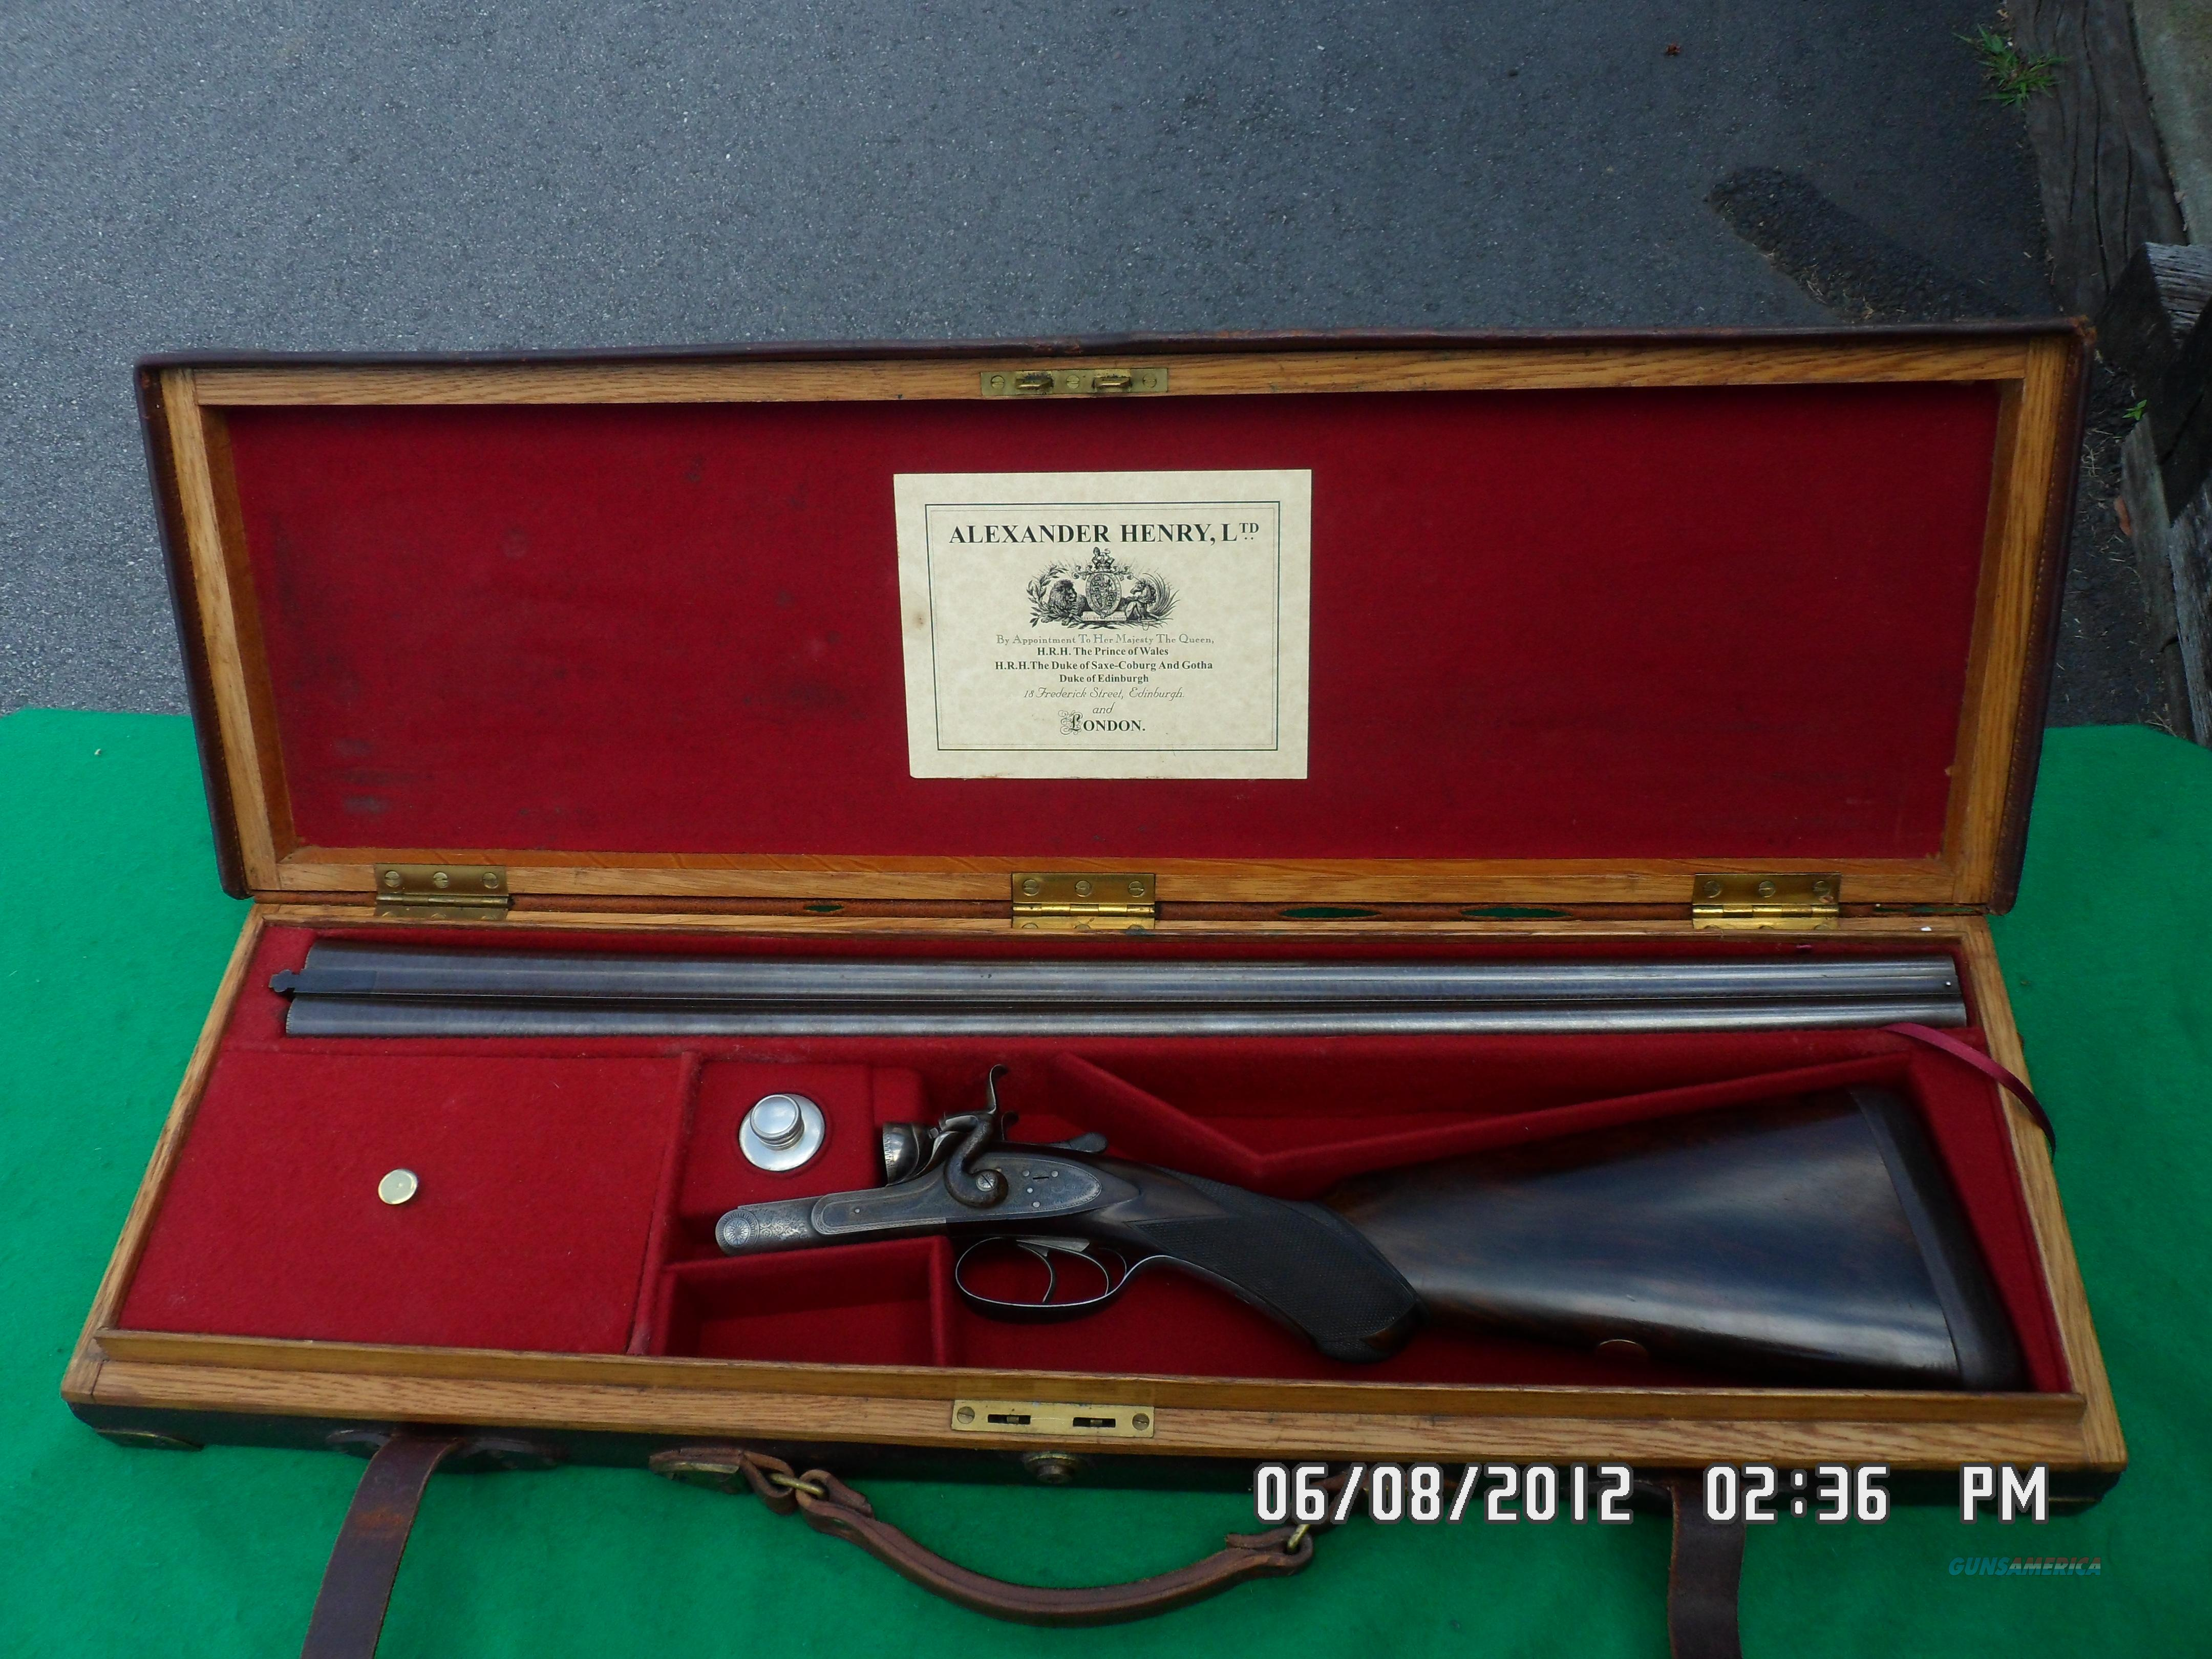 ALEX HENRY BAR ACTION SIDELOCK DOUBLE 12 BORE SHOTGUN 1880'S IN 98% ORIGINAL CONDITION AND CASED!  Guns > Shotguns > Rigby Shotguns